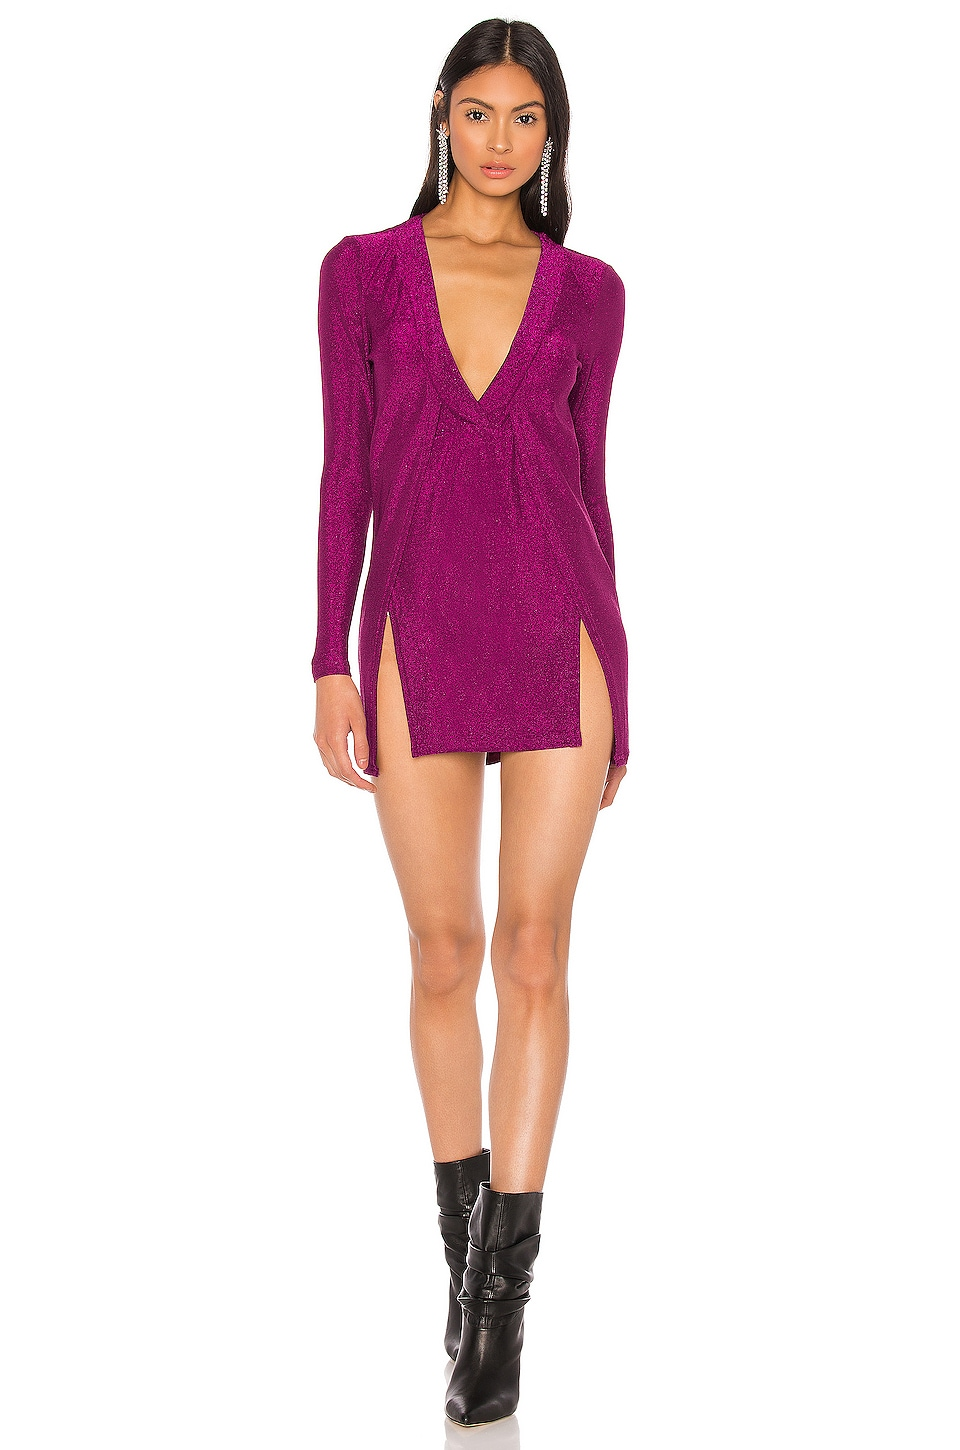 superdown x Draya Michele Mellie Dual Slit Mini Dress in Magenta